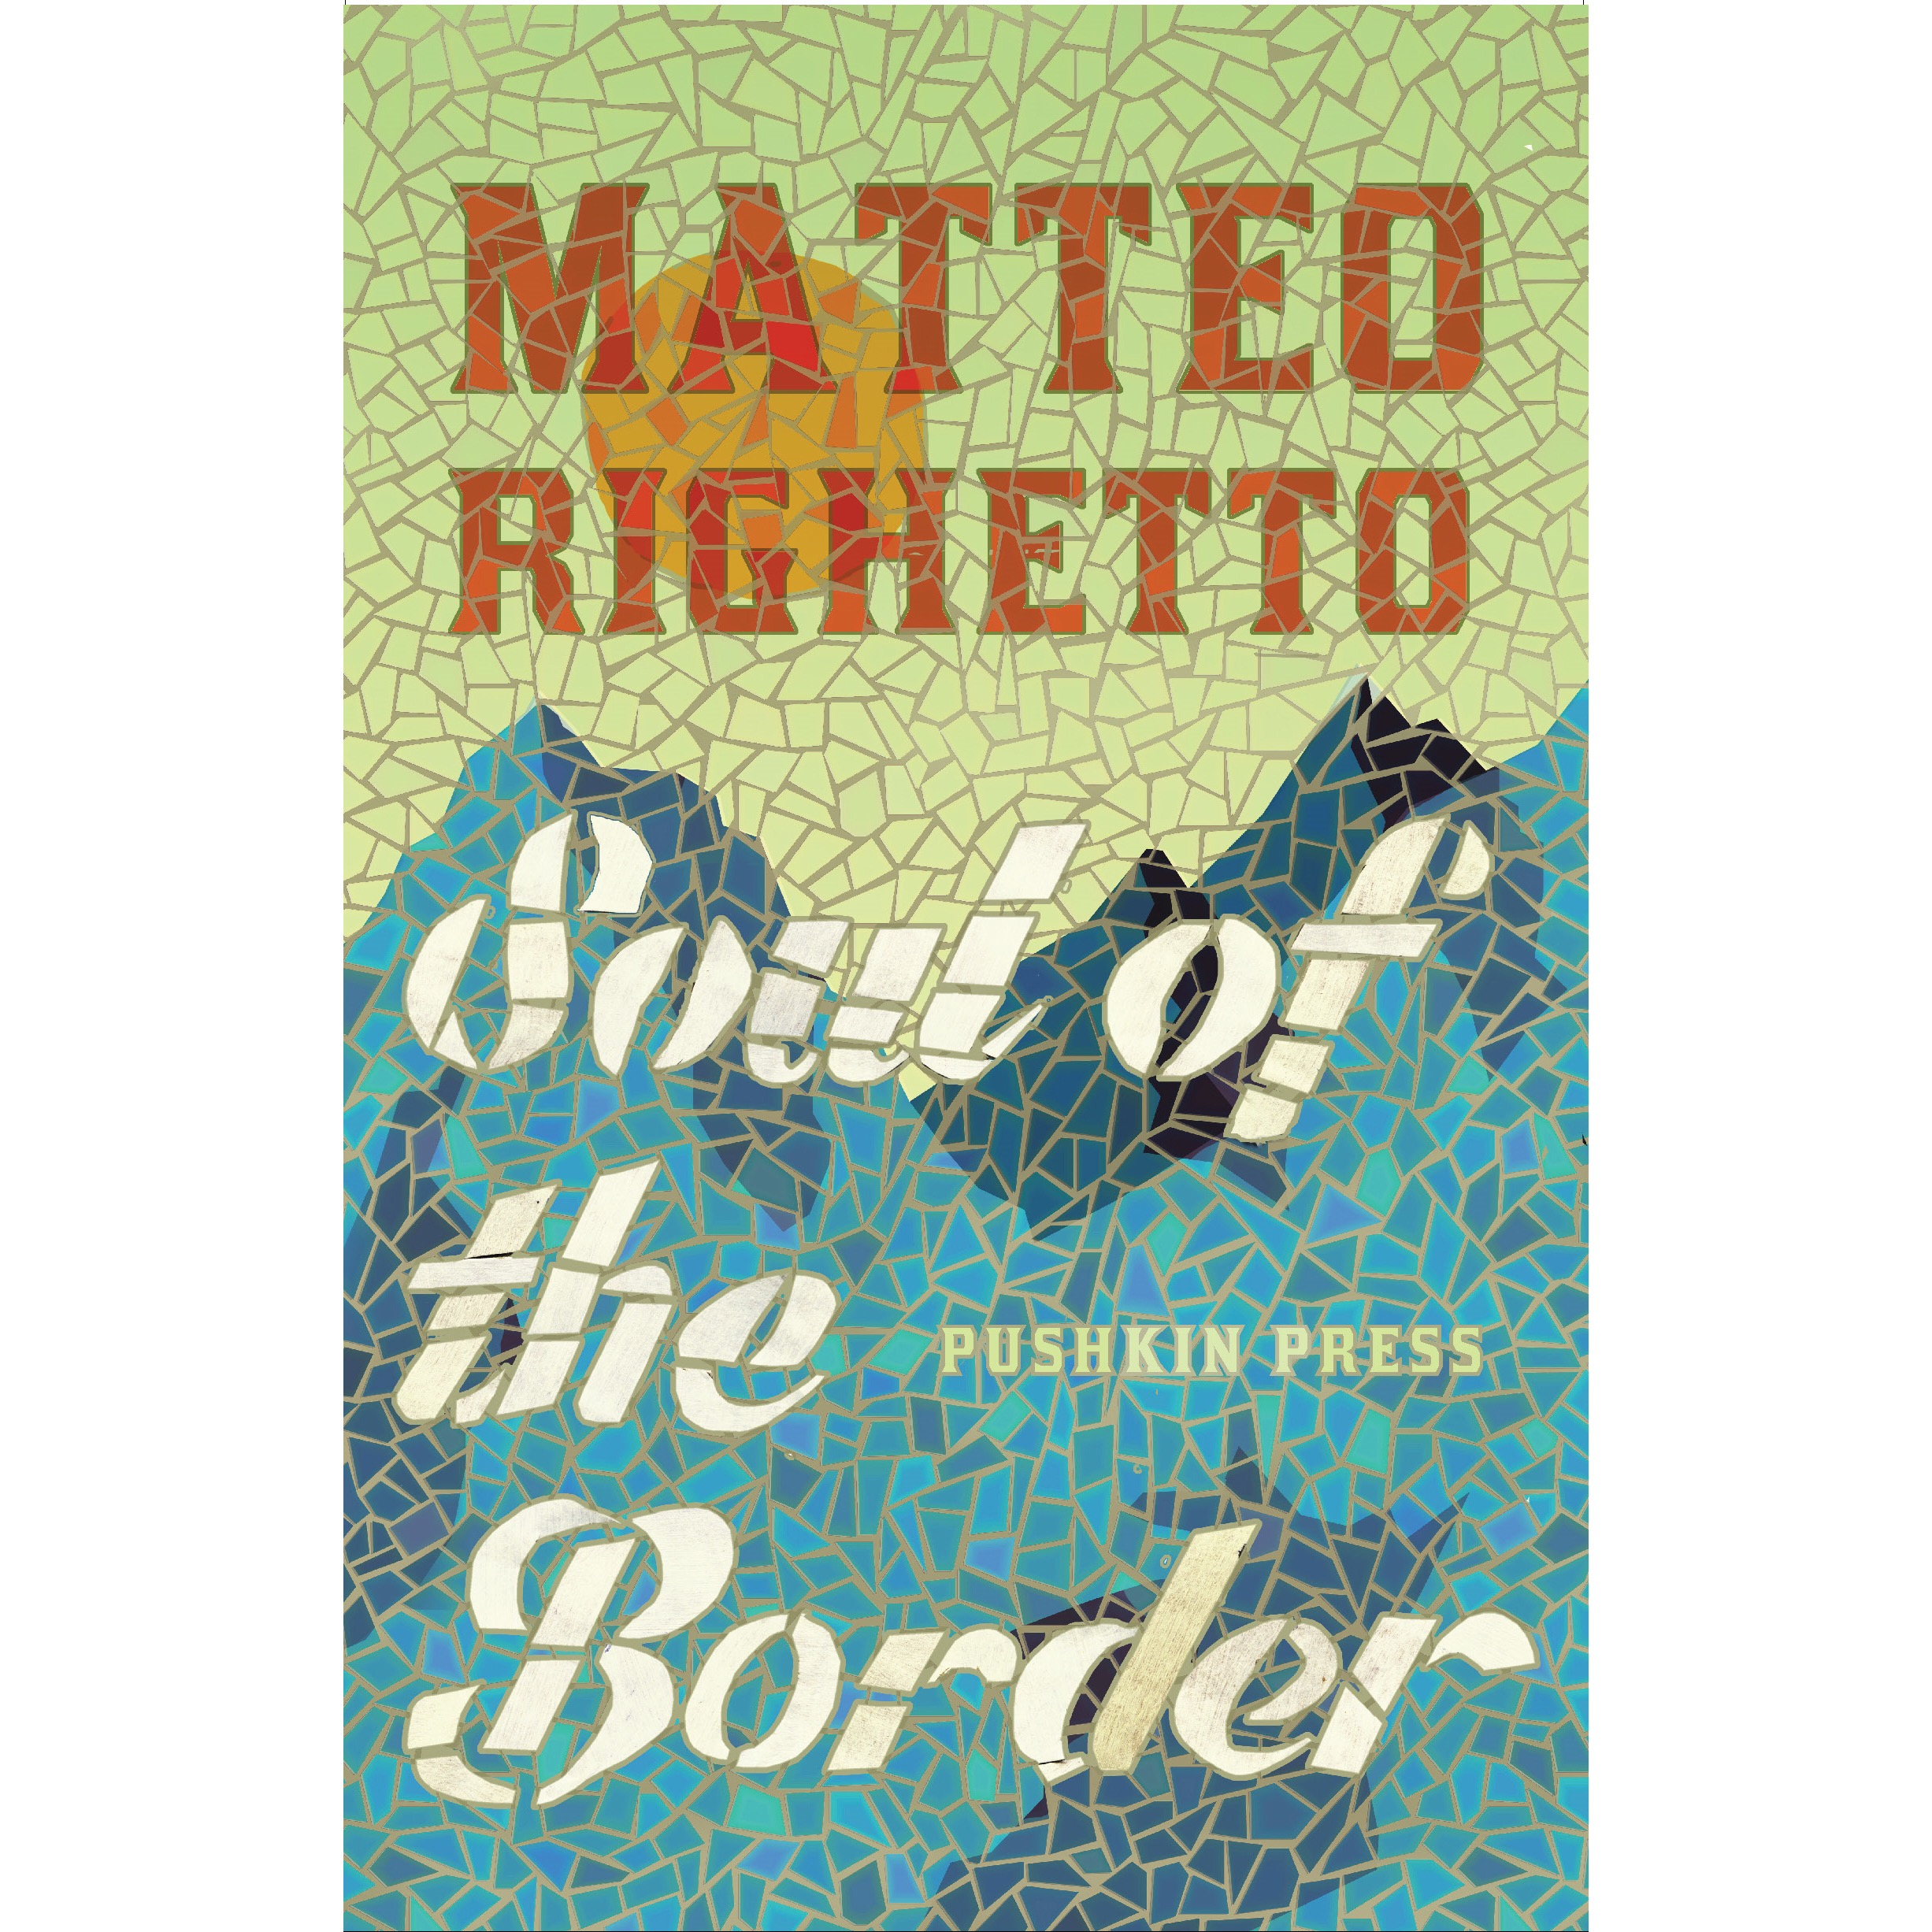 SOUL OF THE BORDER - by Matteo Righettotranslated by Howard CurtisPushkin Press